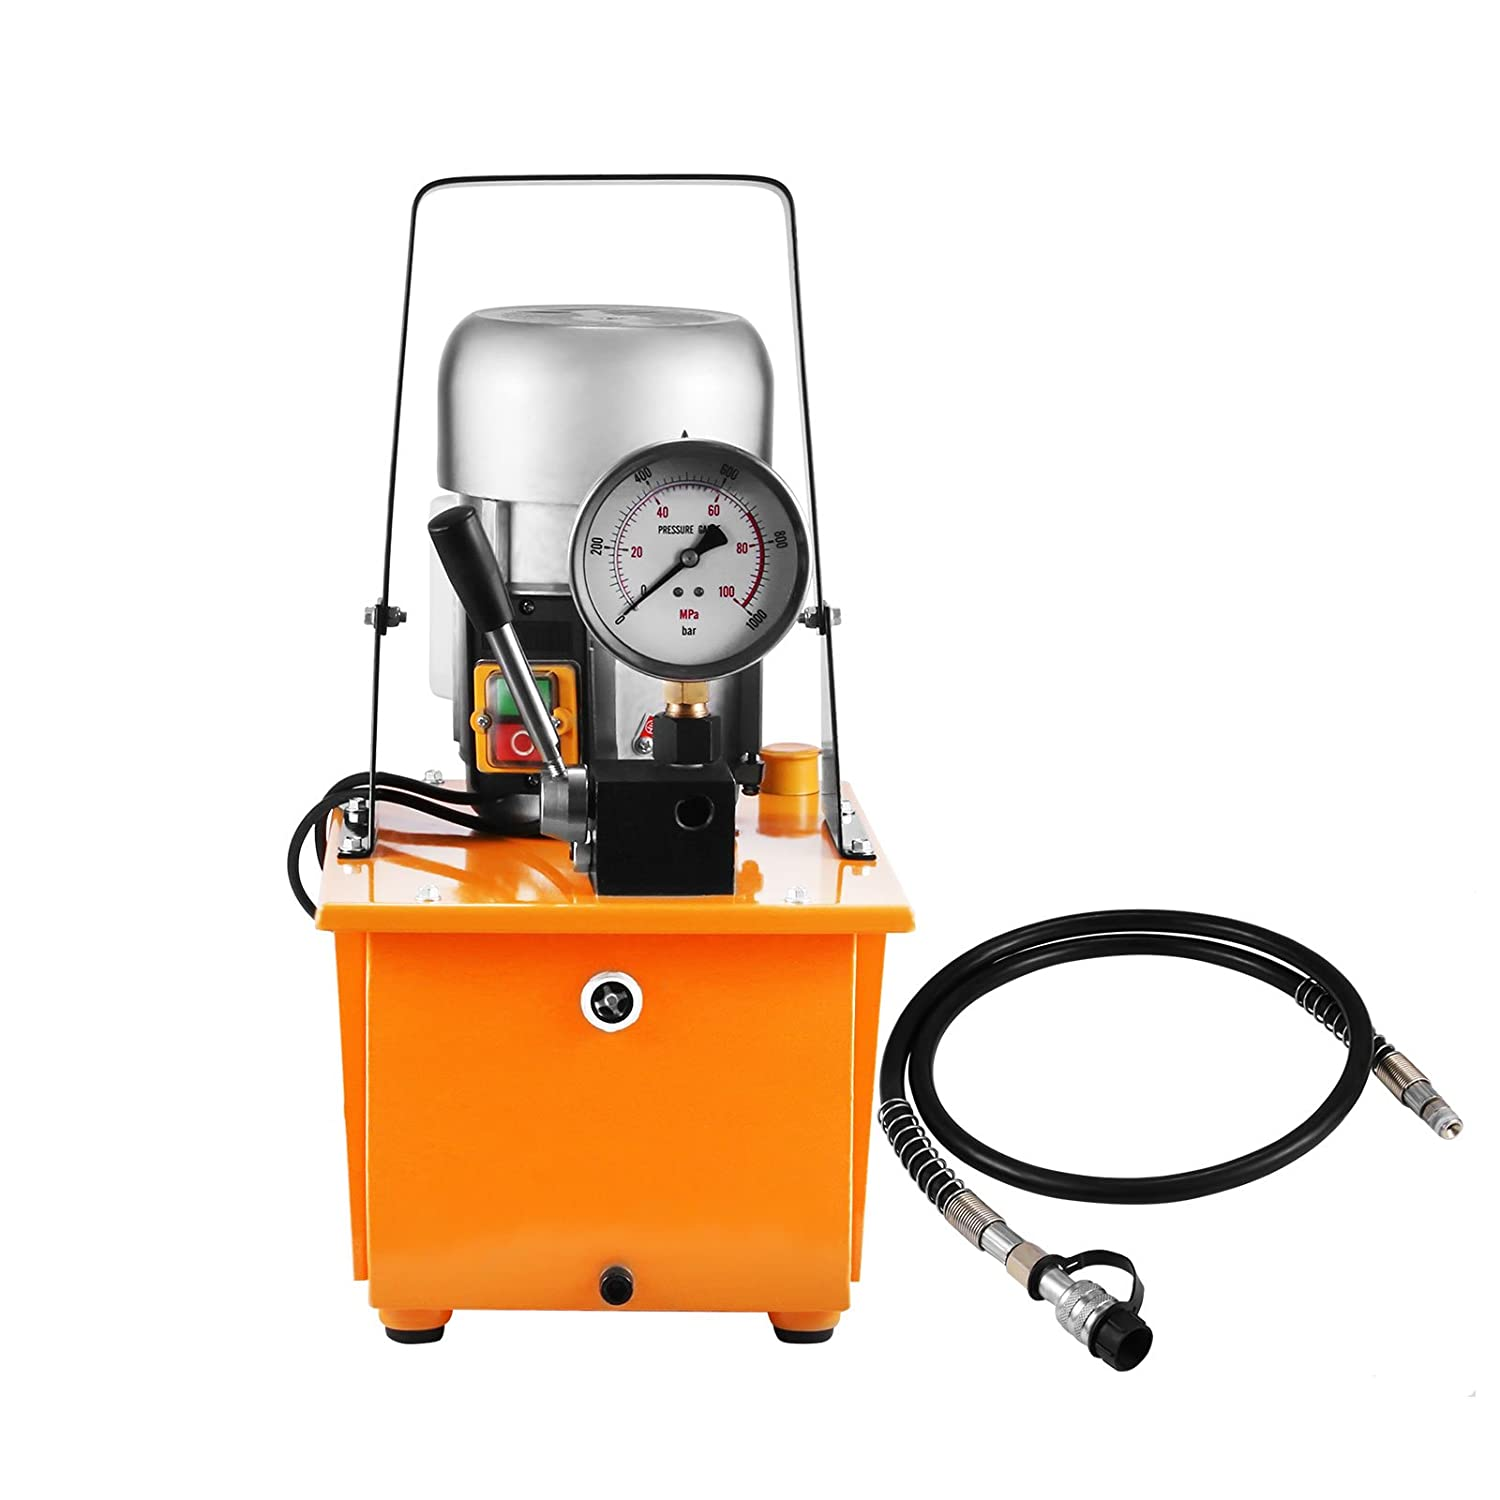 Double Acting Hydraulic Pump Happybuy Hydraulic Pump Electric Double Acting Manual Valve Hydraulic Pump 10000 PSI 0.75KW Driven Hydraulic Pump for Home and Commercial Using